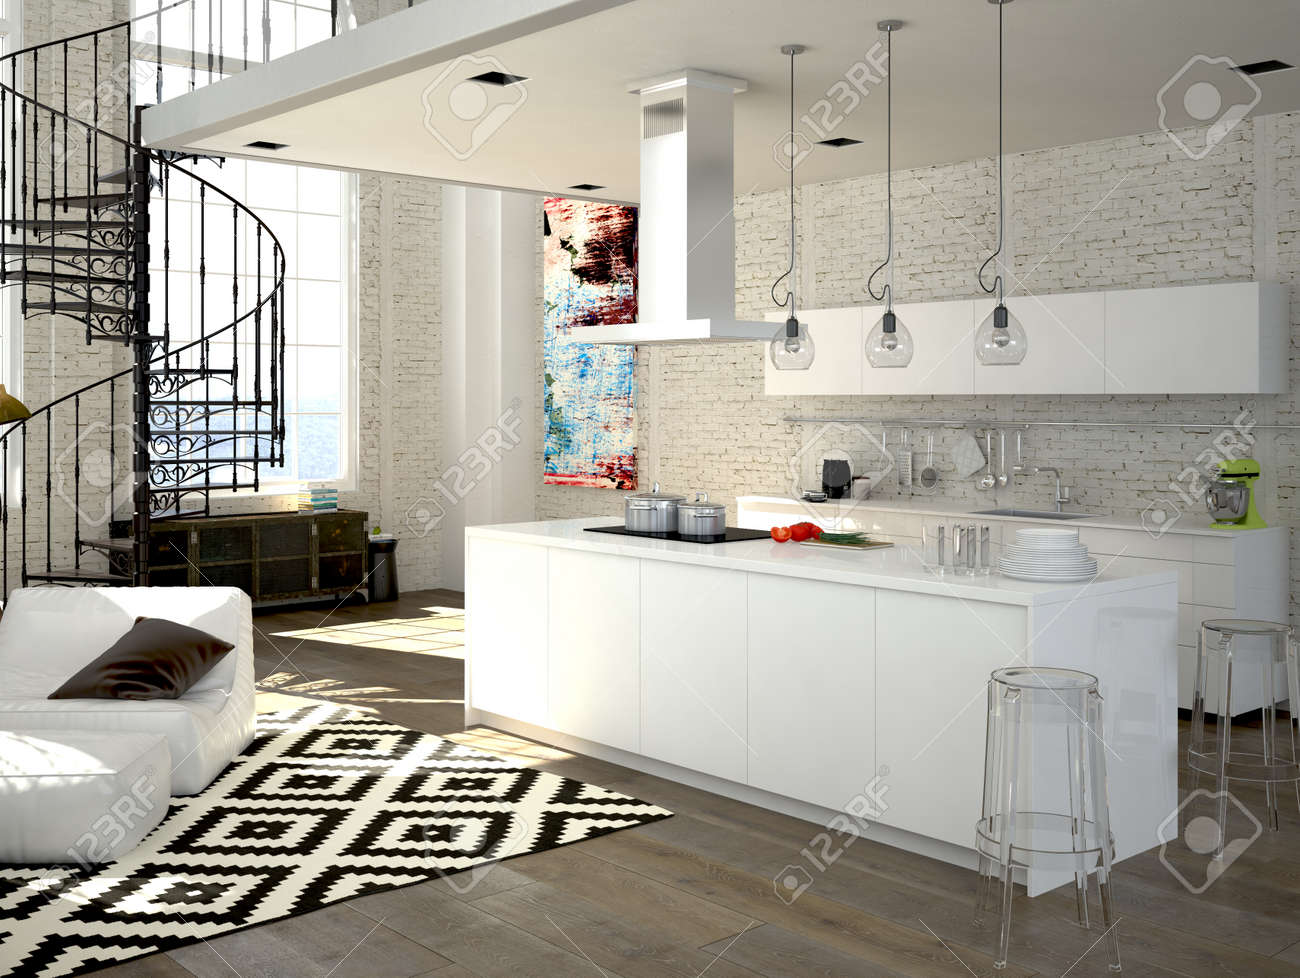 Modern Loft With A Kitchen And Living Room. 3d Rendering Stock Photo ...